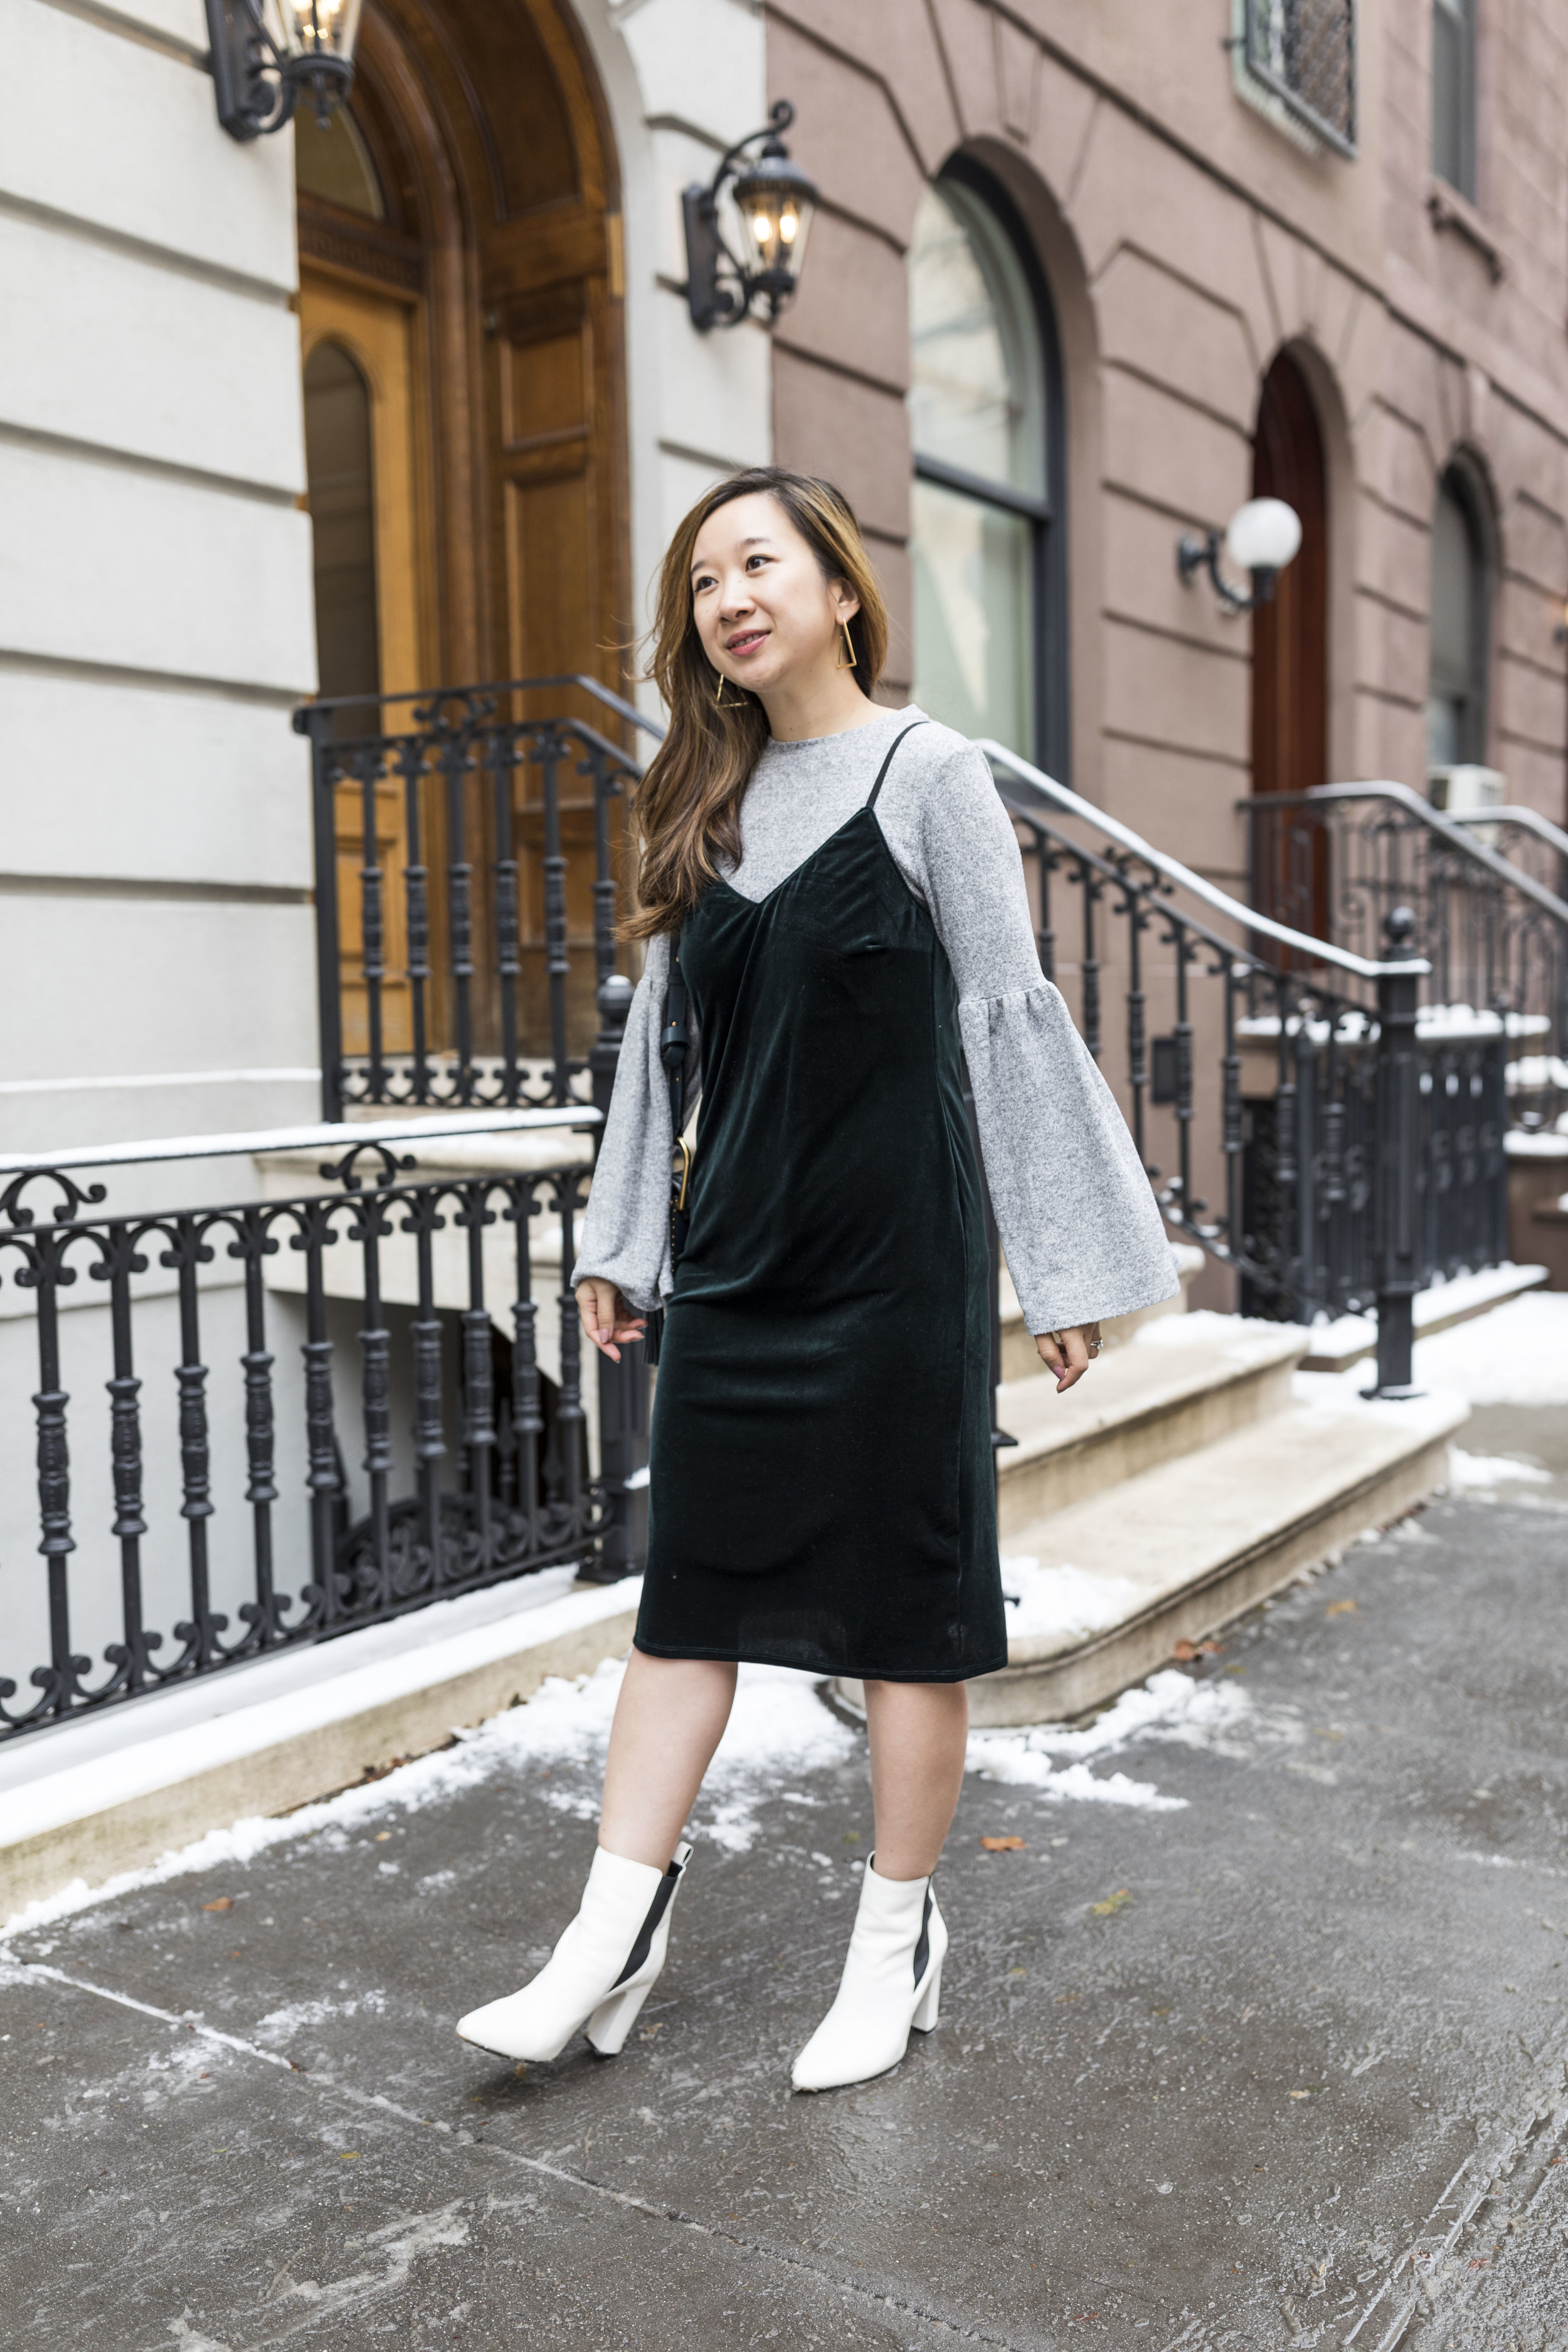 Winter Style No. 1 - Velvet Cami Dress over a Sweater